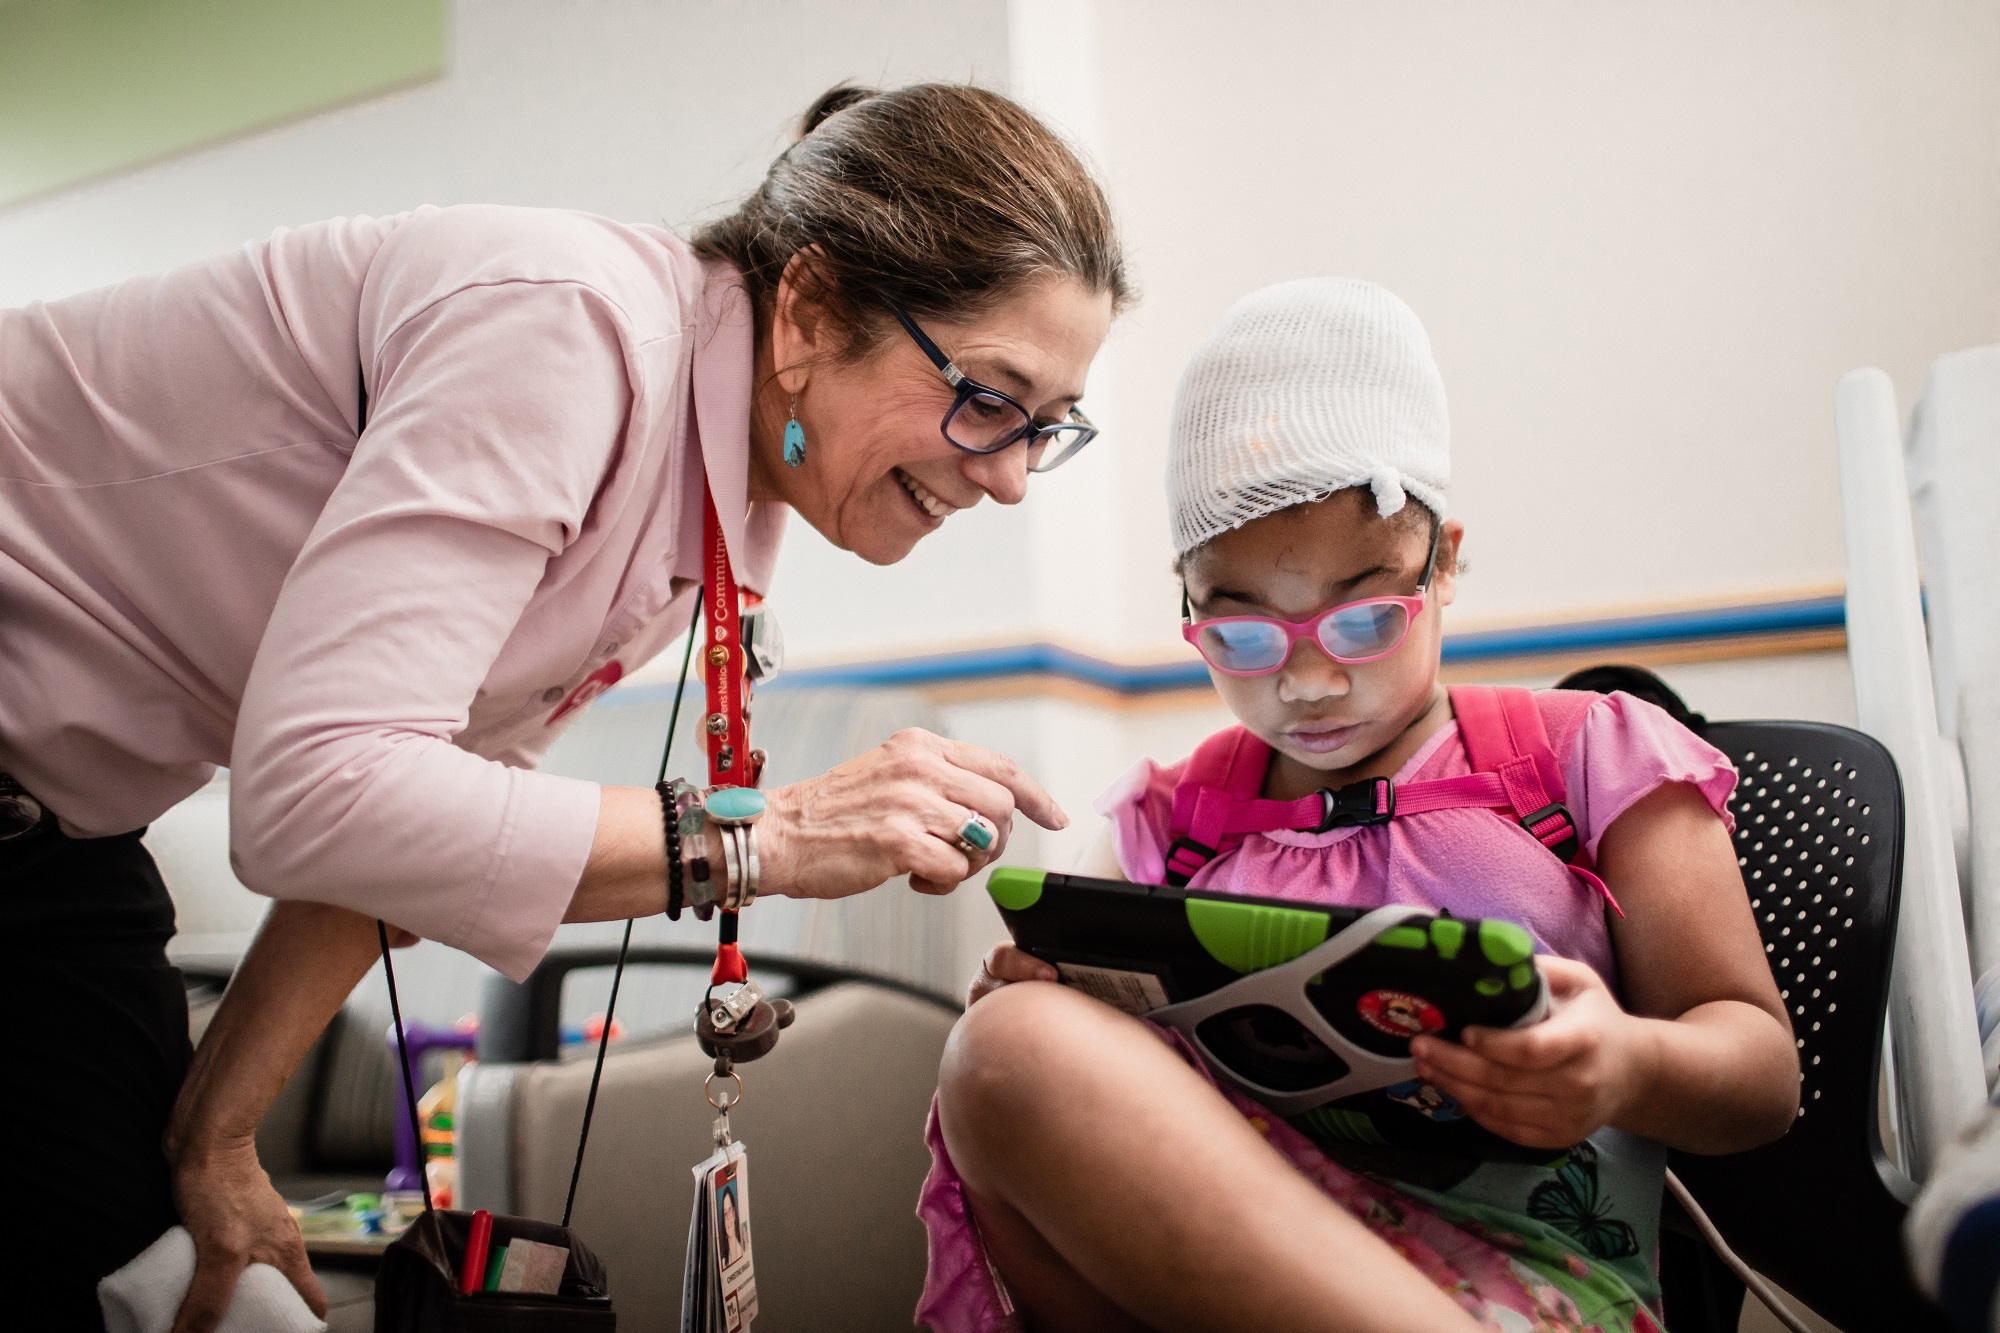 A girl with autism looks at a tablet device while a Children's National caregiver assists her.